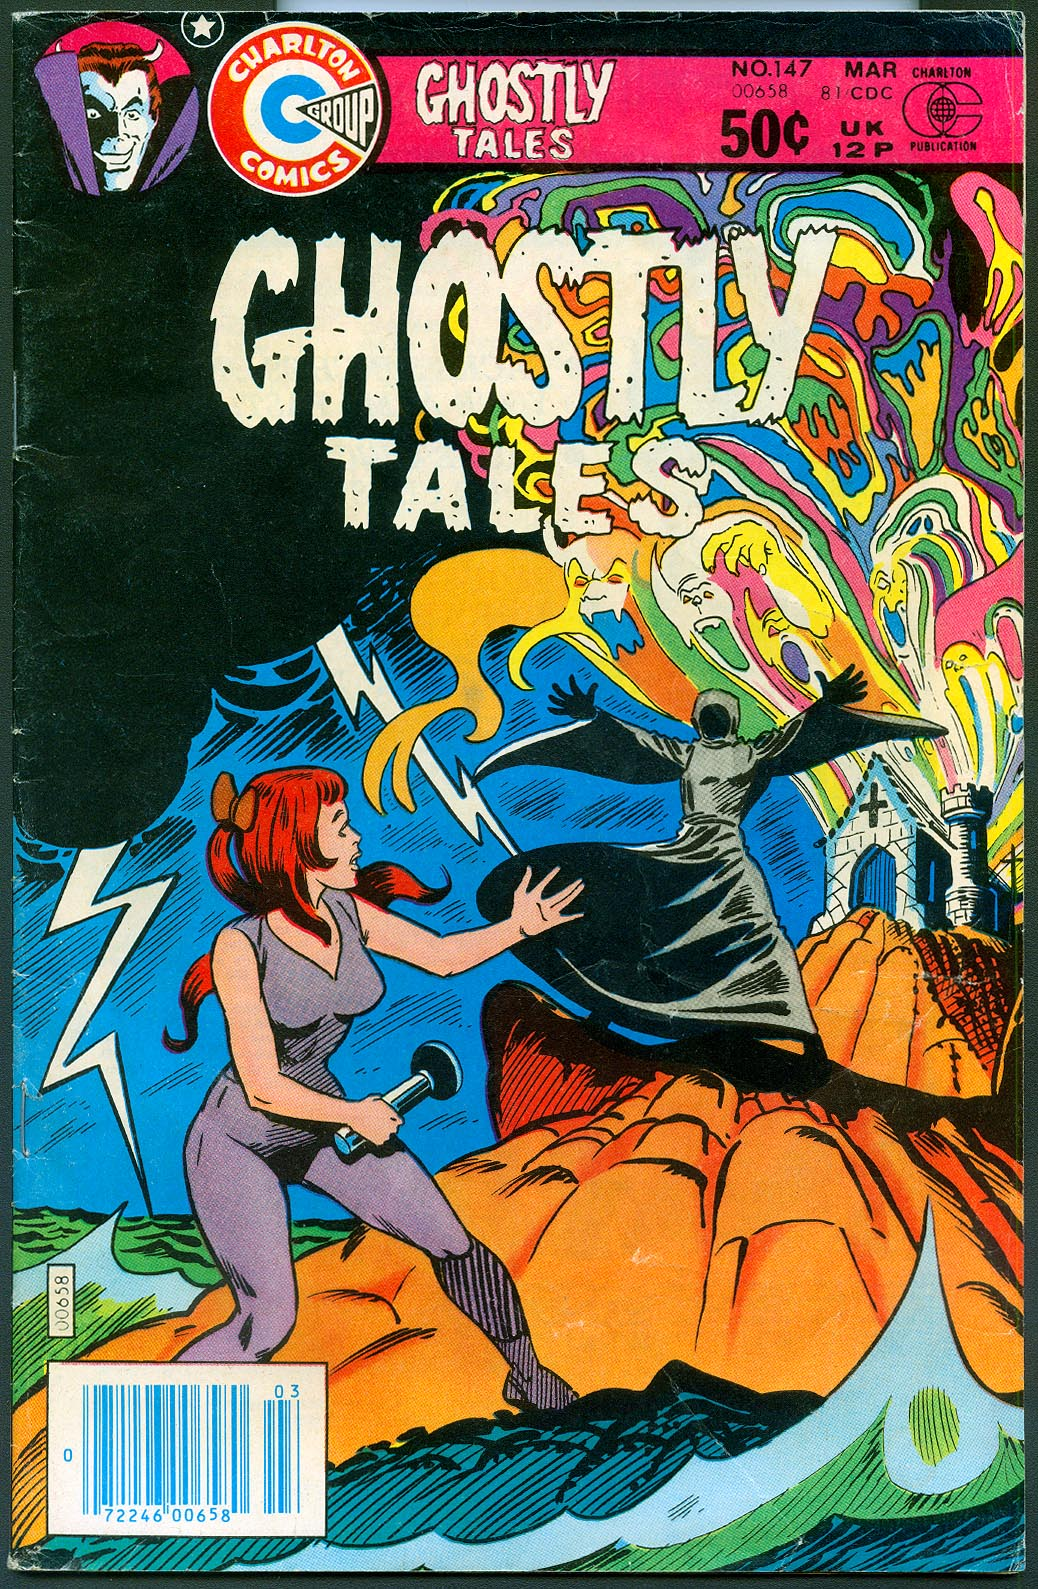 Ghostly Tales (Charlton) 147 -VG 2